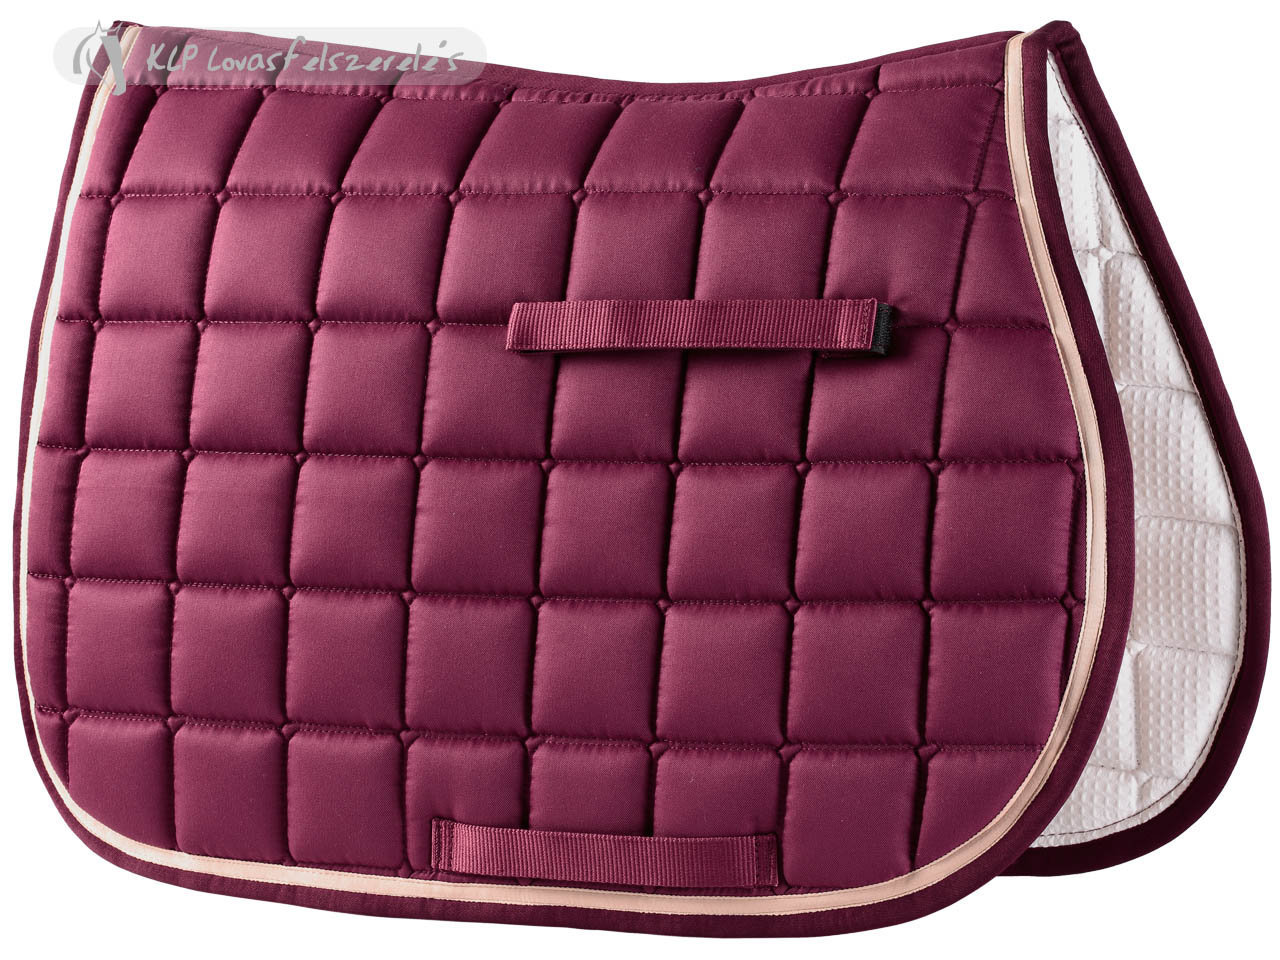 Daslö Gold Saddle Pad